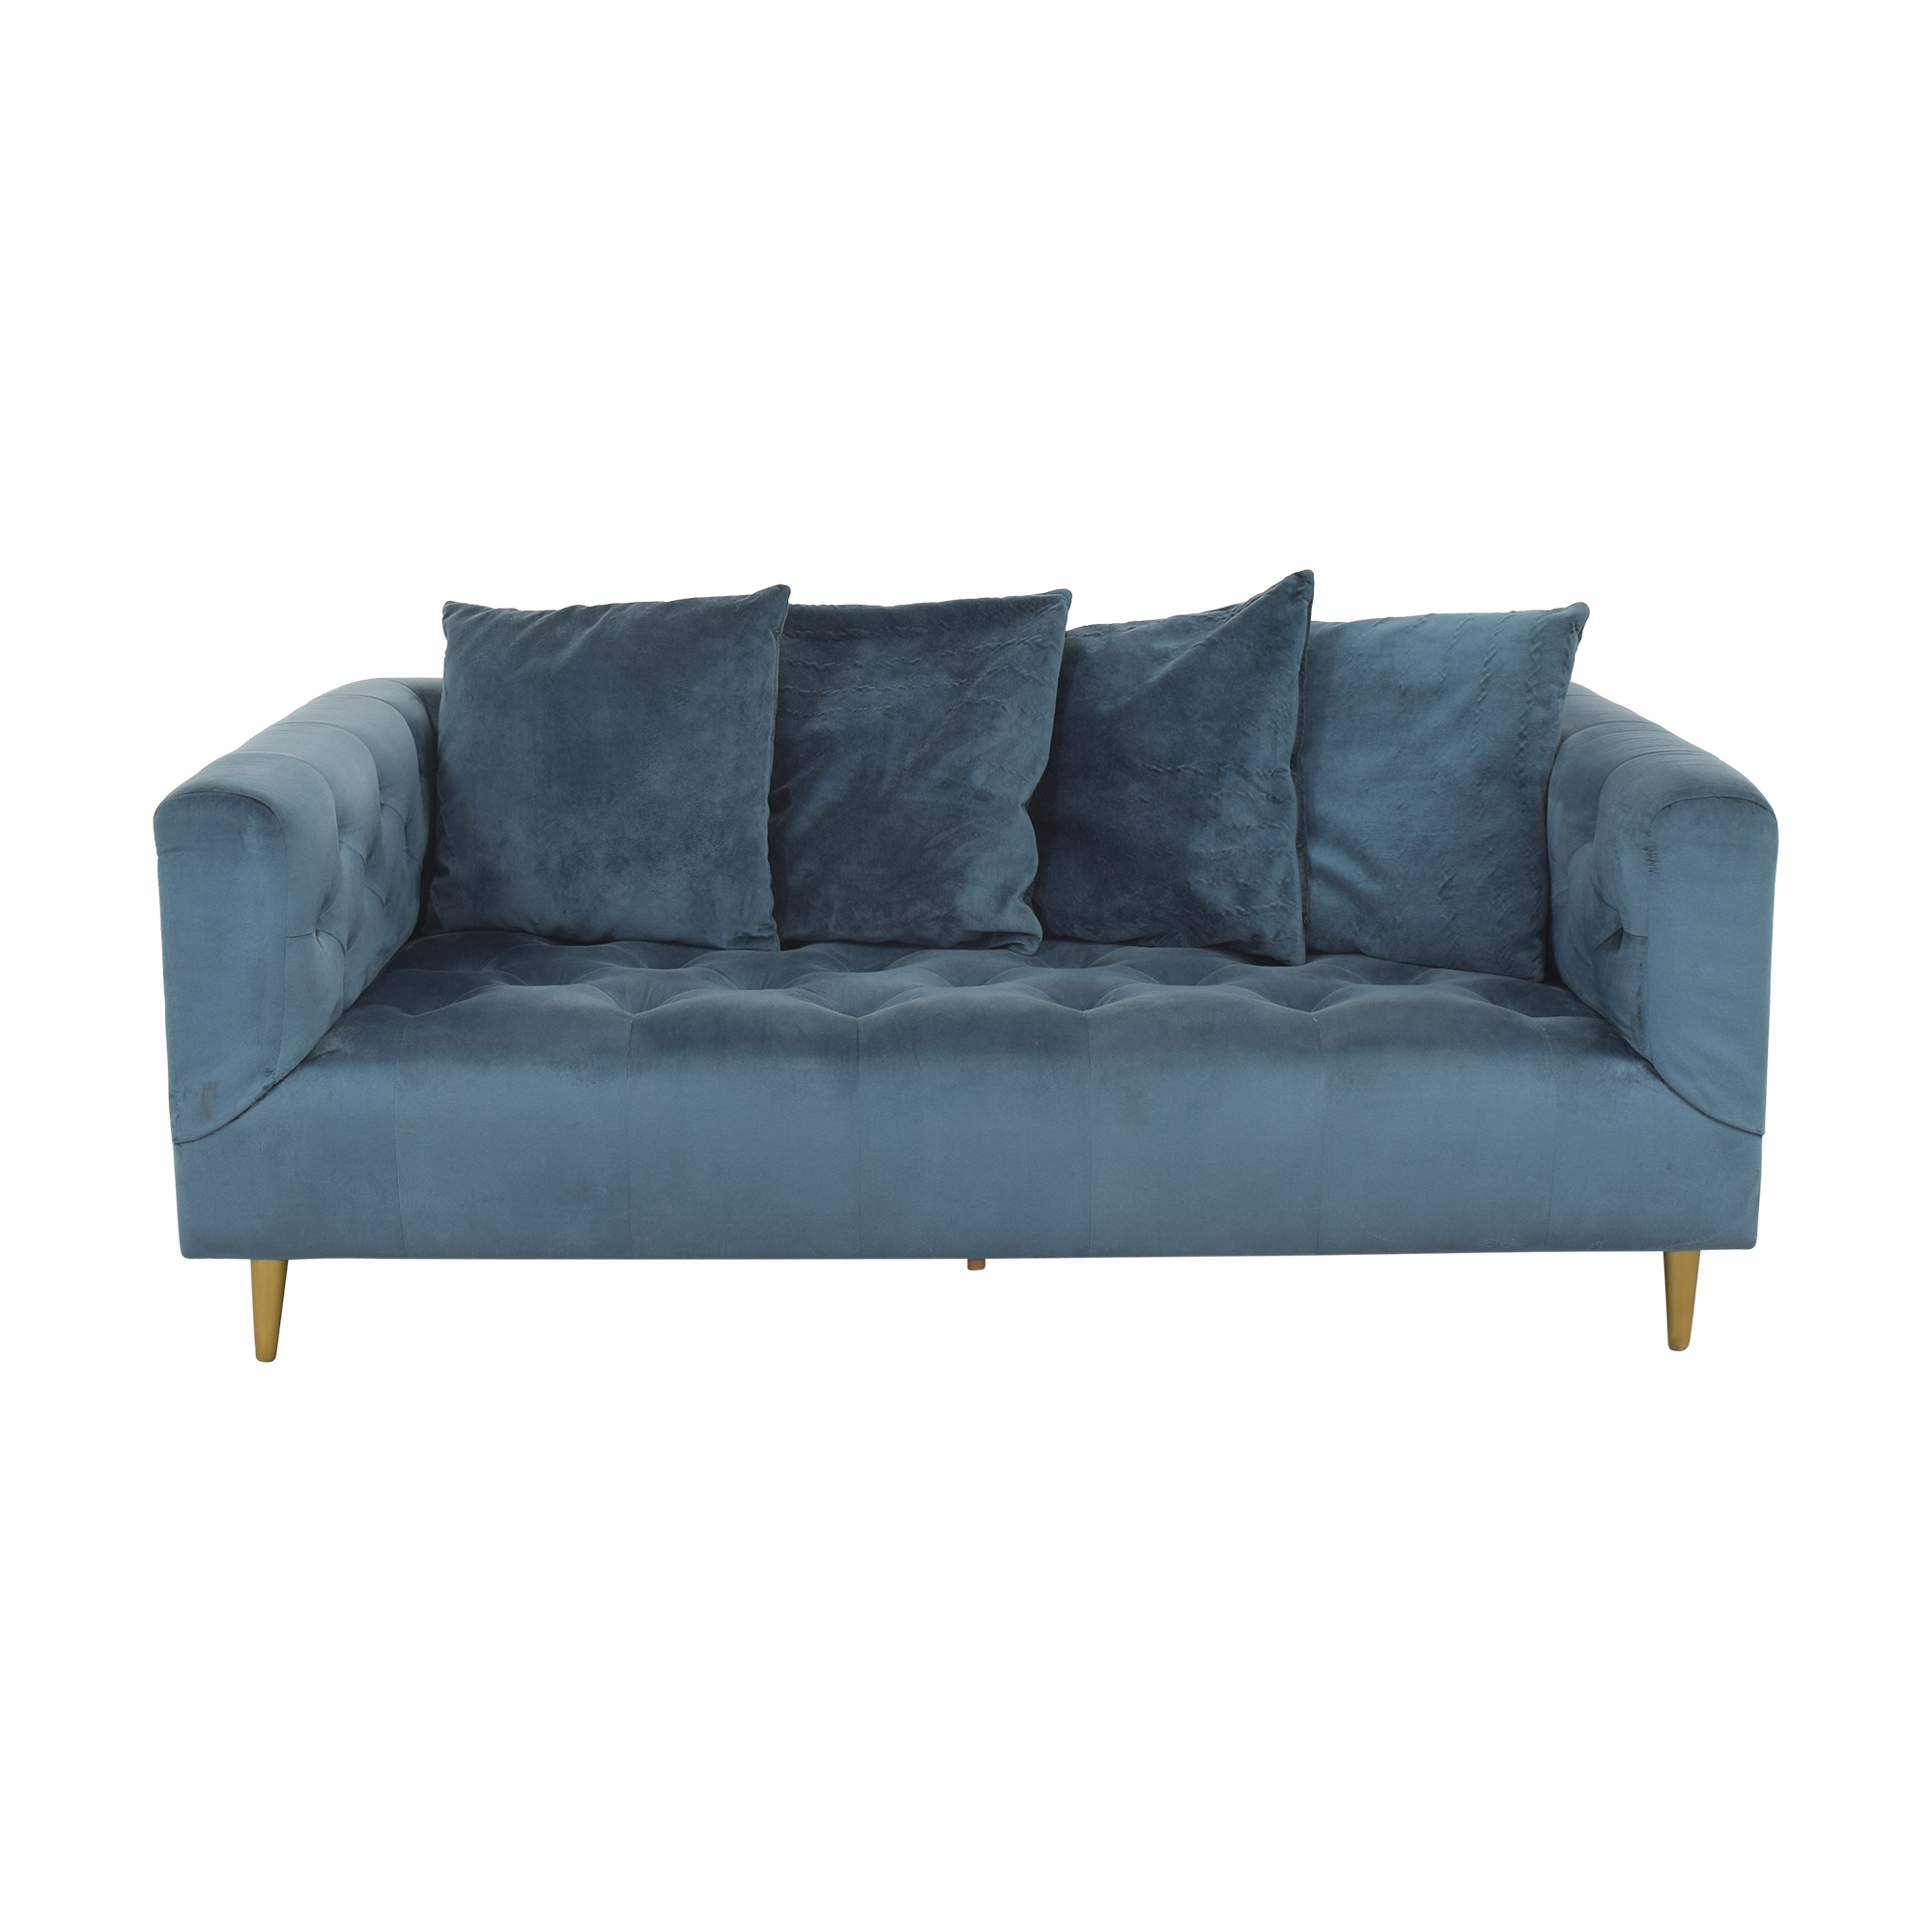 Interior Define Interior Define Ms. Chesterfield Loveseat ct